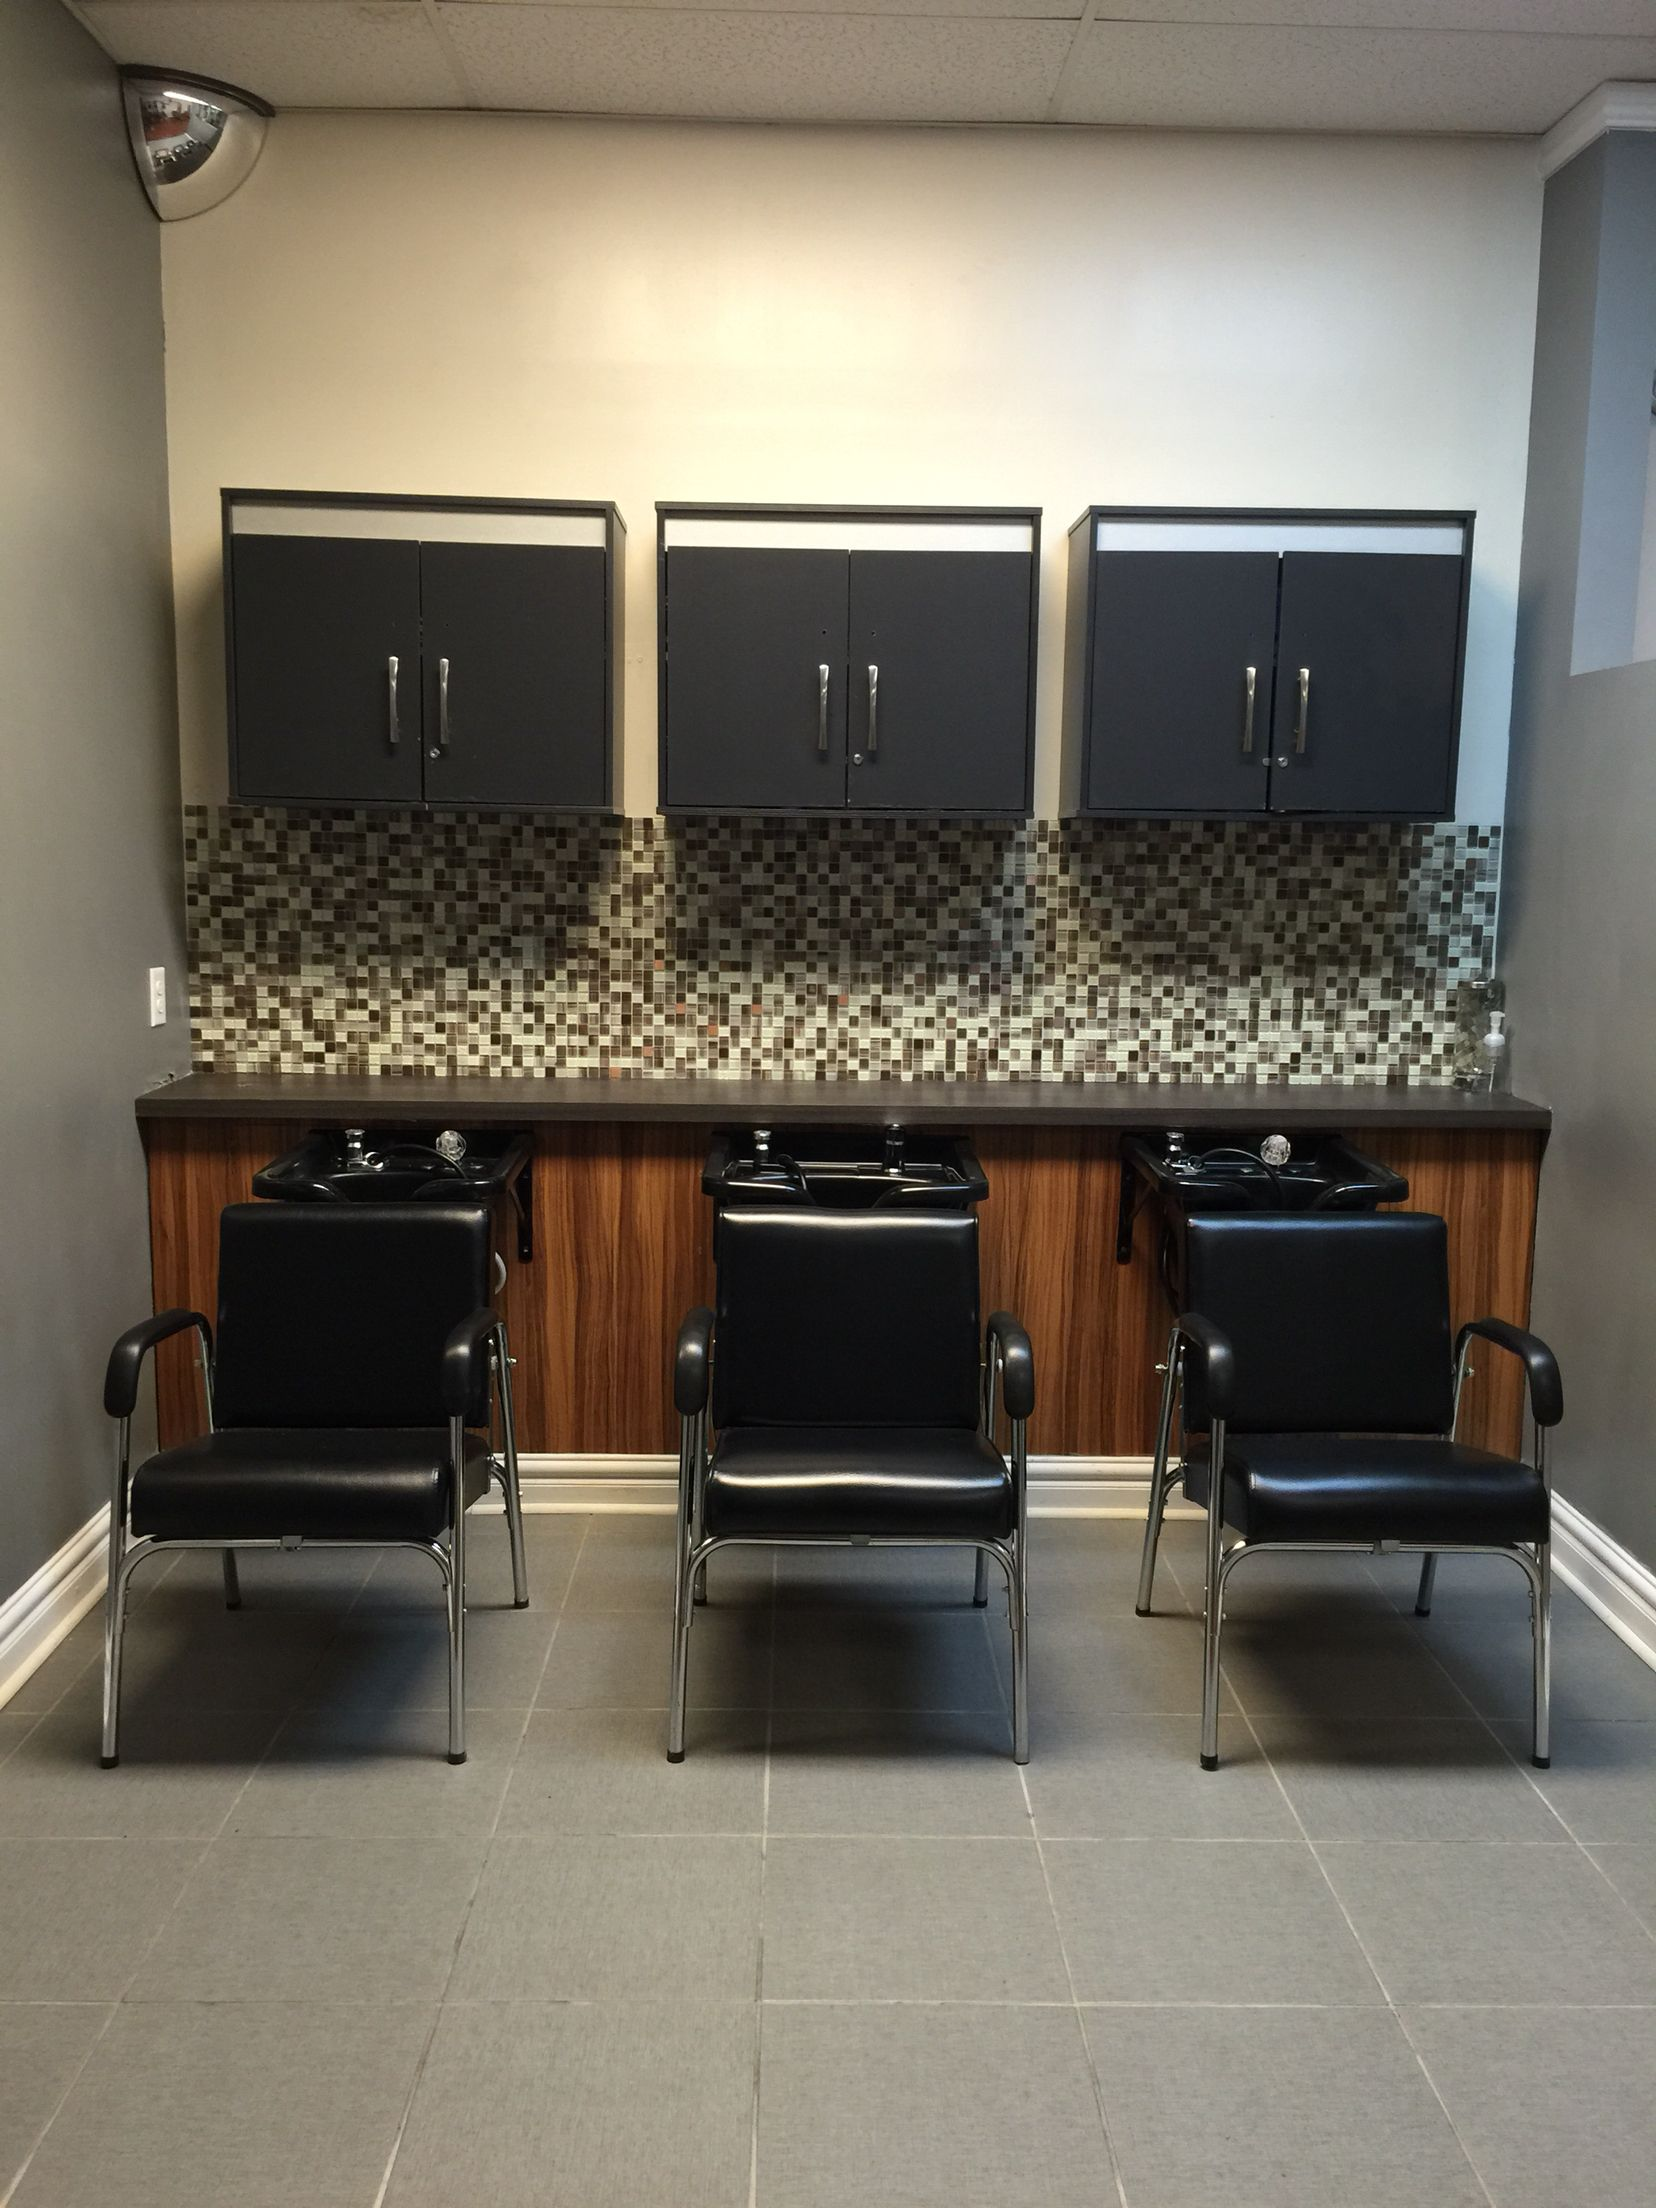 Like The Look Of Counter, Marble Shampoo Holder. Open Cabinets